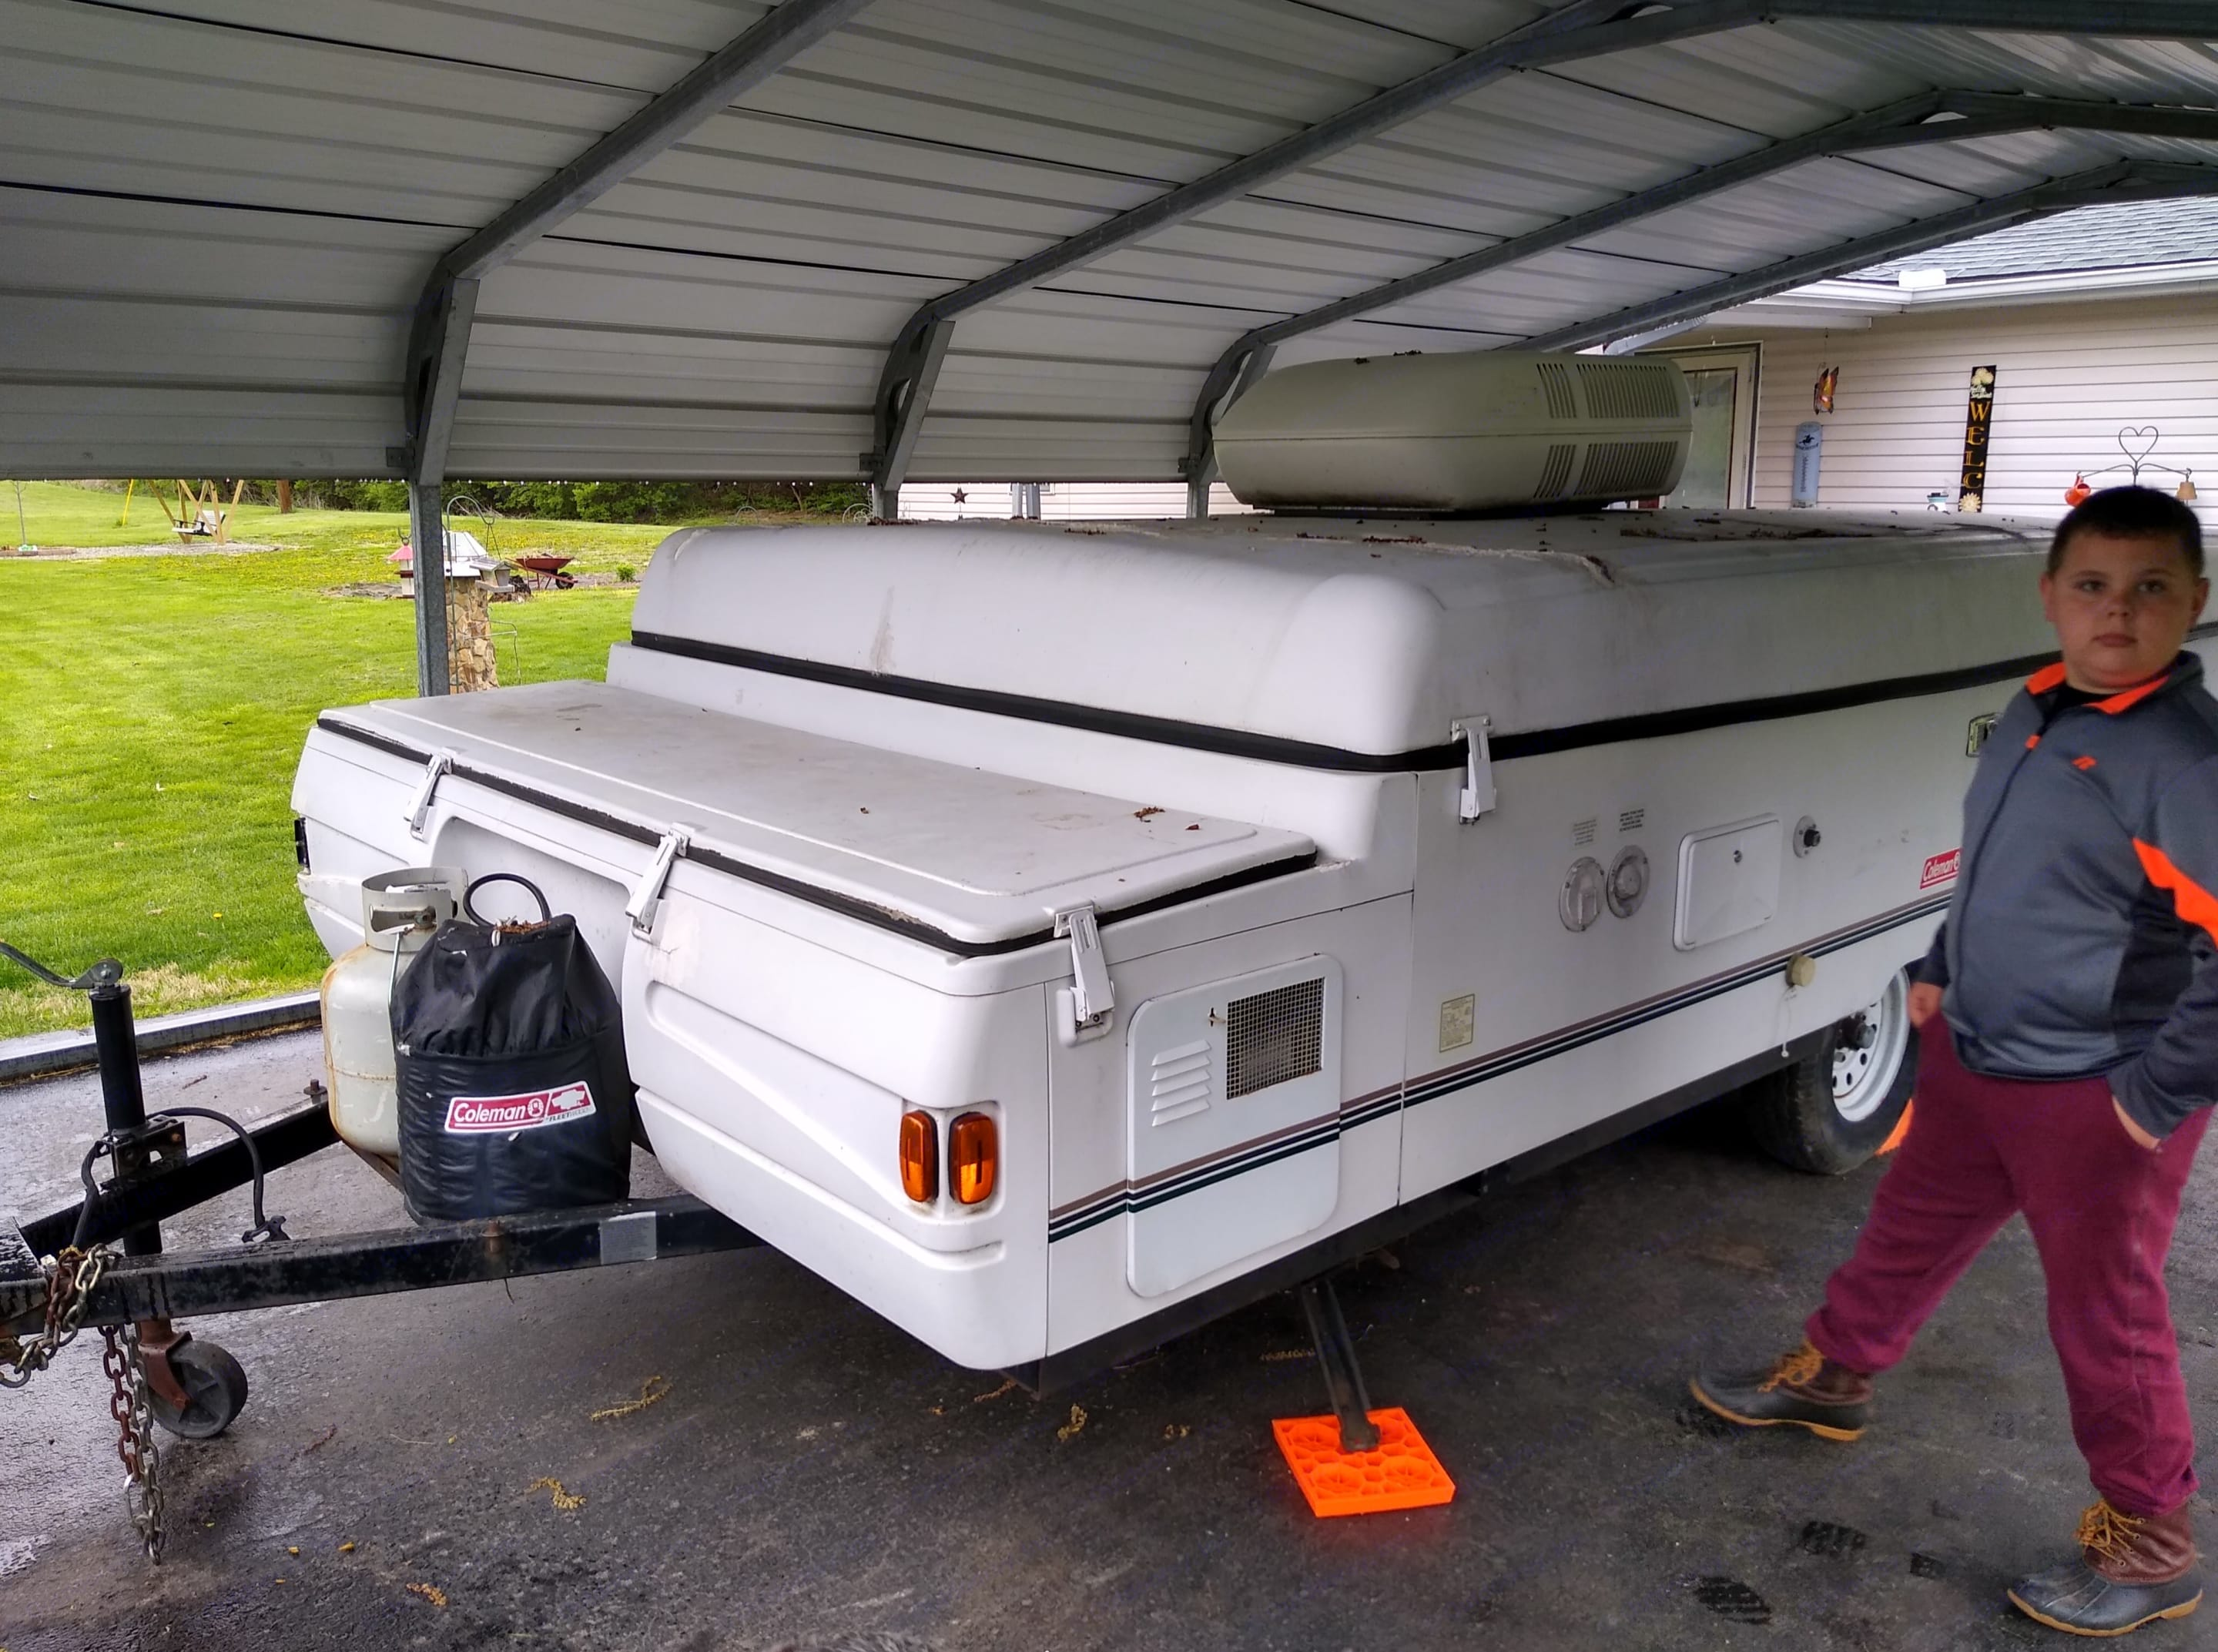 The Camper folds up so it is easy to tow with a midsize SUV or Minivan. Coleman Grand Tour Mesa 2000